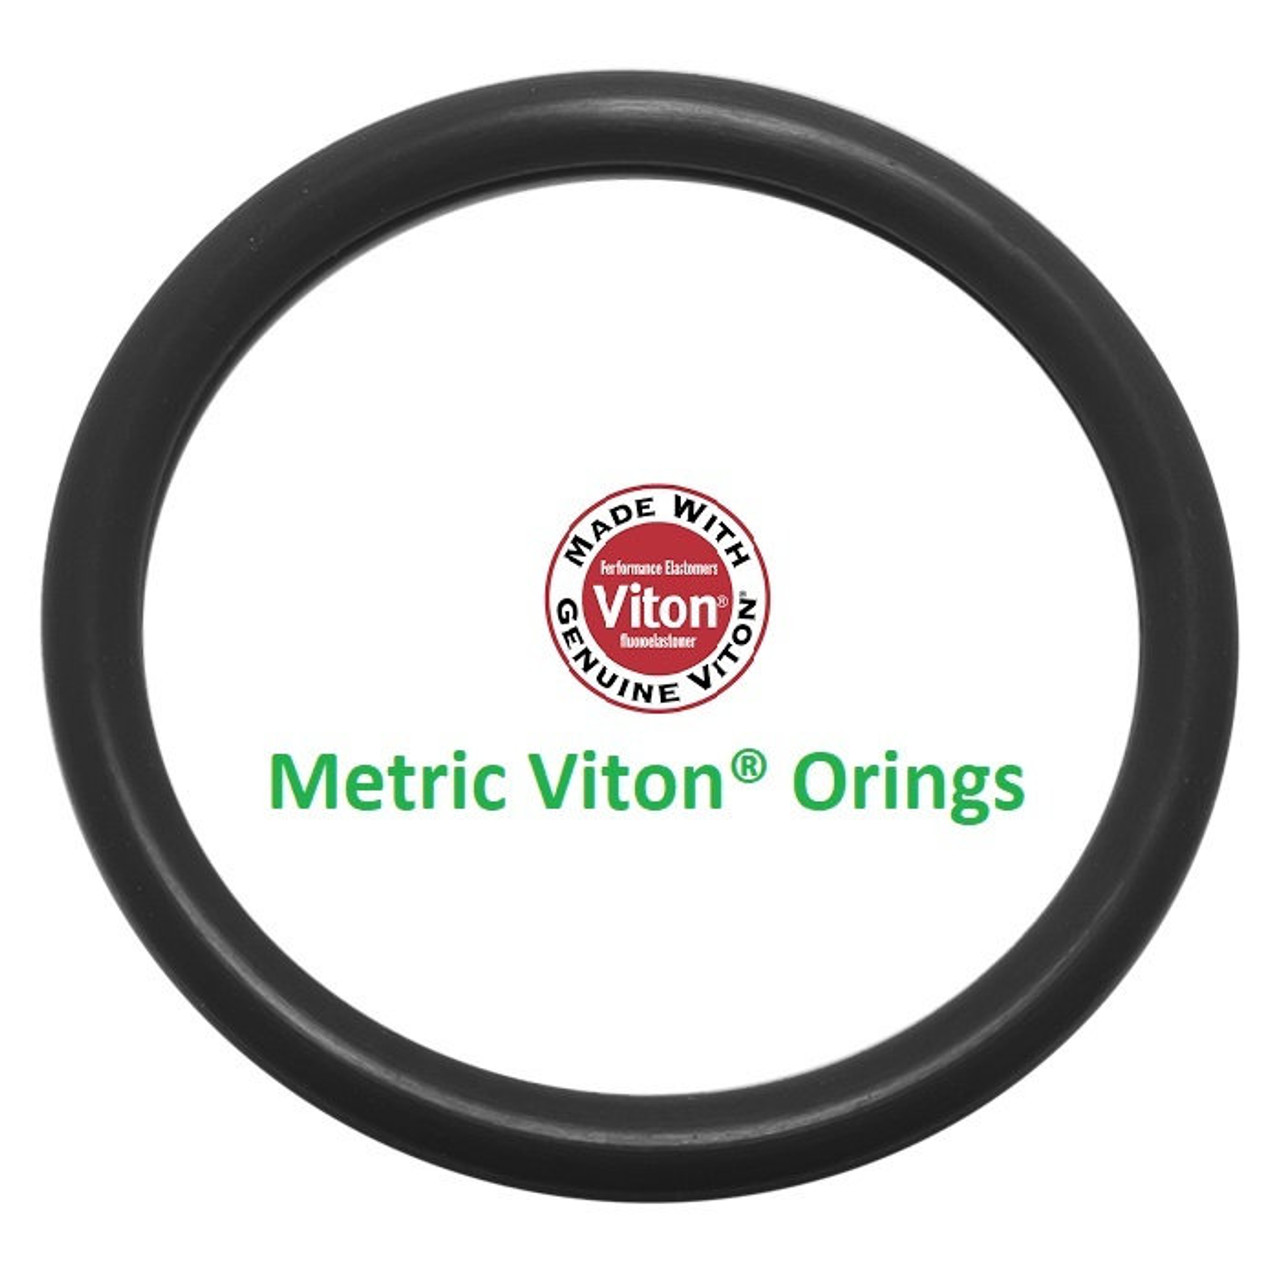 Viton®/FKM O-ring 114.6 x 5.7mm JIS P115 Price for 1 pcs